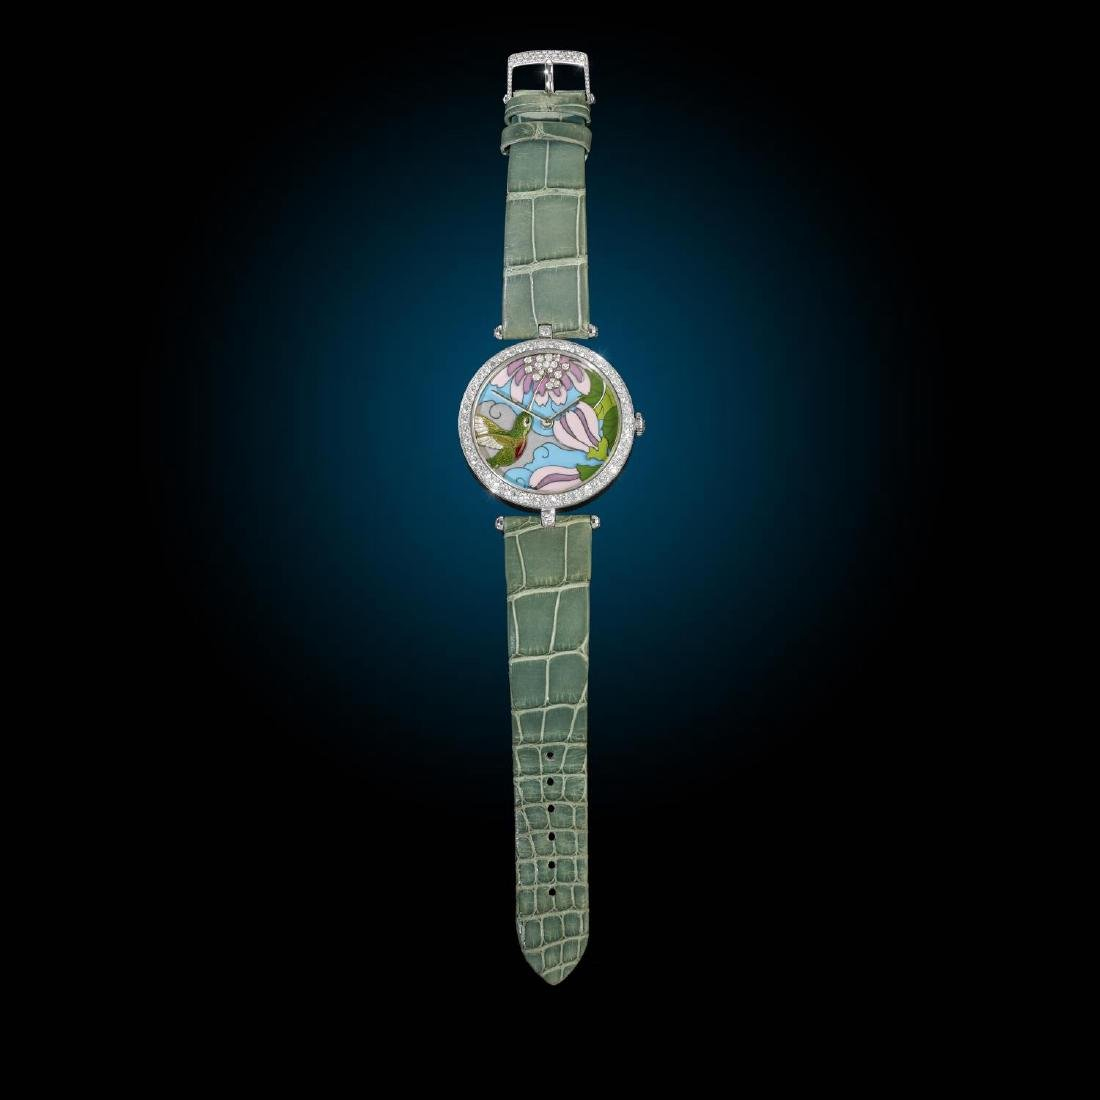 VAN CLEEF & ARPELS - a lady's limited edition